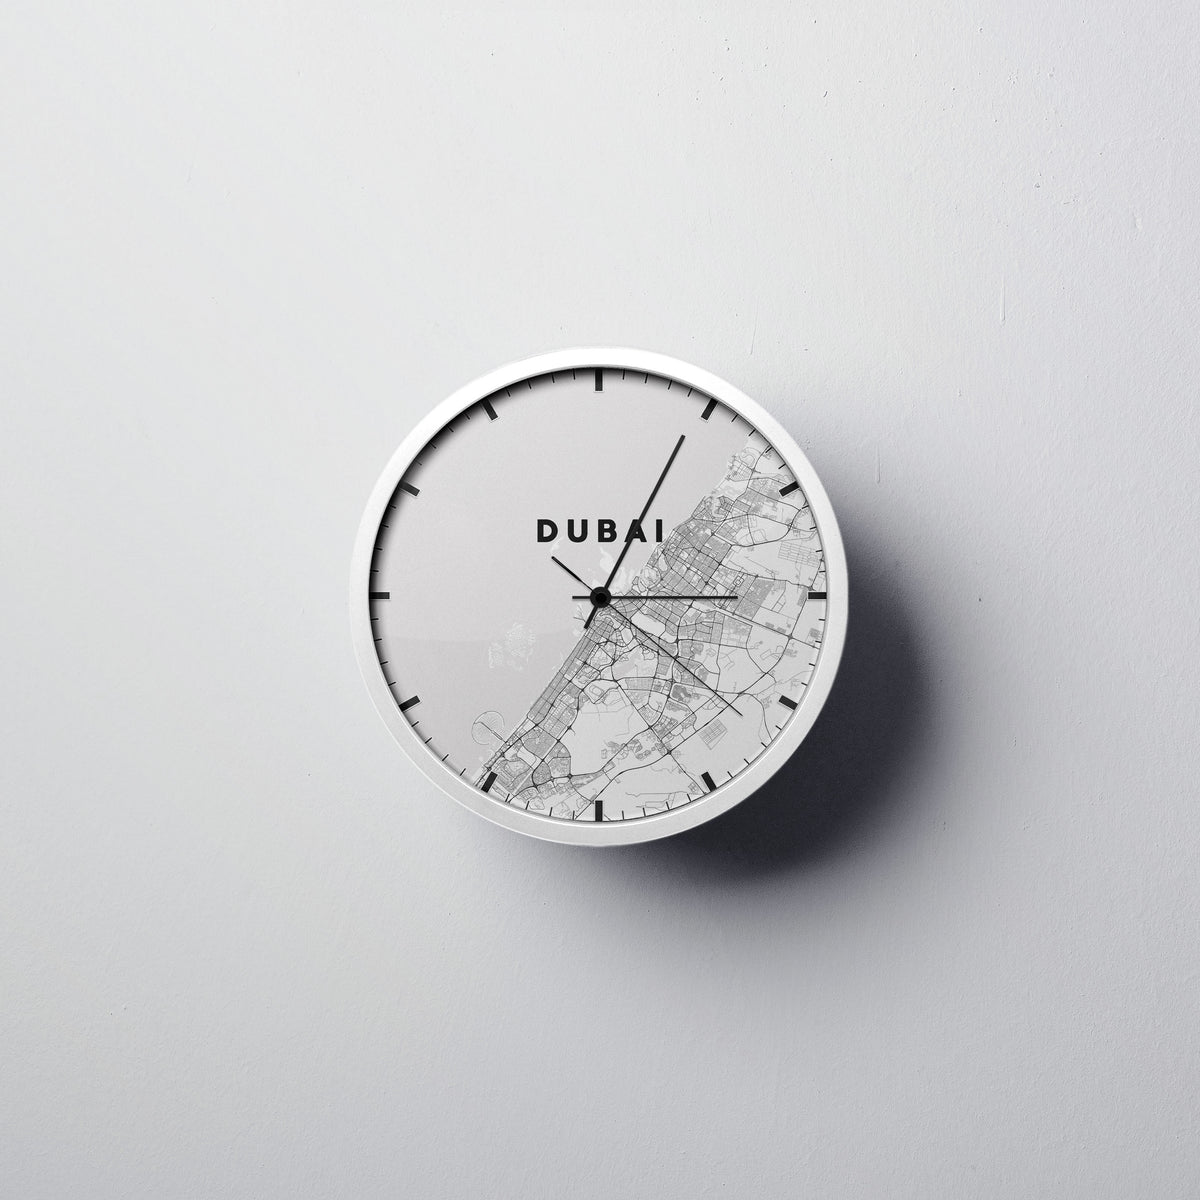 Dubai Wall Clock - Point Two Design